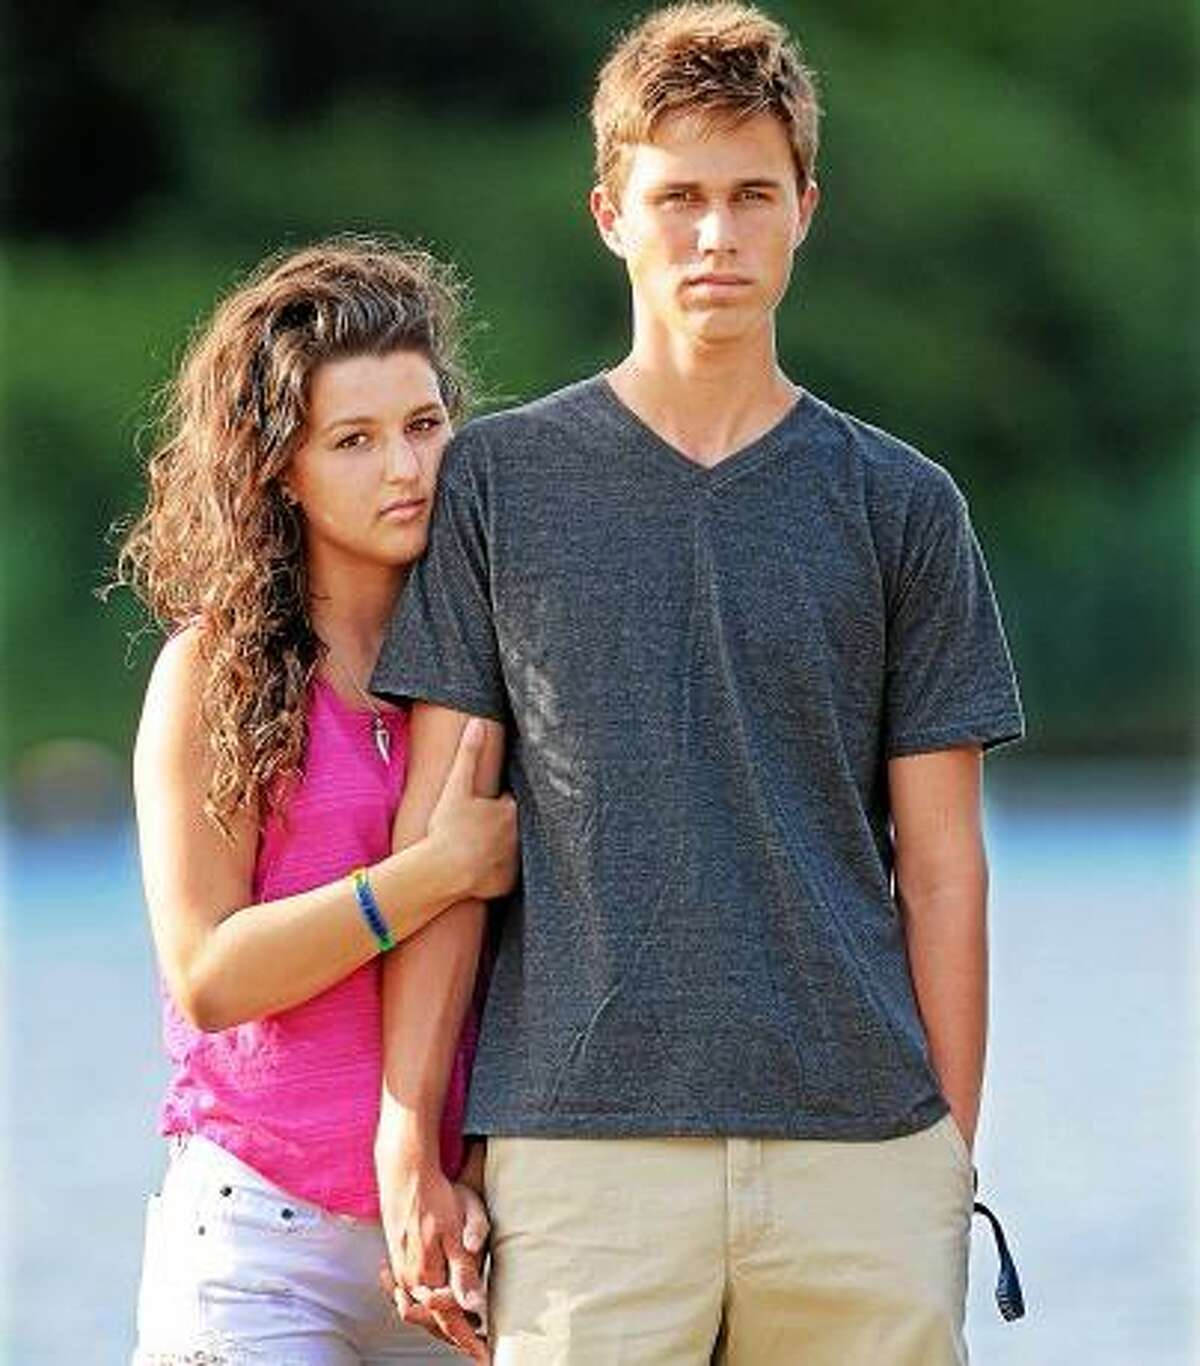 Middletown resident Tyler Renfro, 17, who has been dating Kendel Souza, 18, for only three months, saved Souza from drowning at Misquamicut State Beach in Westerly, Rhode Island. Renfro and Souza are graduates of Middletown High School's class of 2013. Catherine Avalone - The Middletown Press